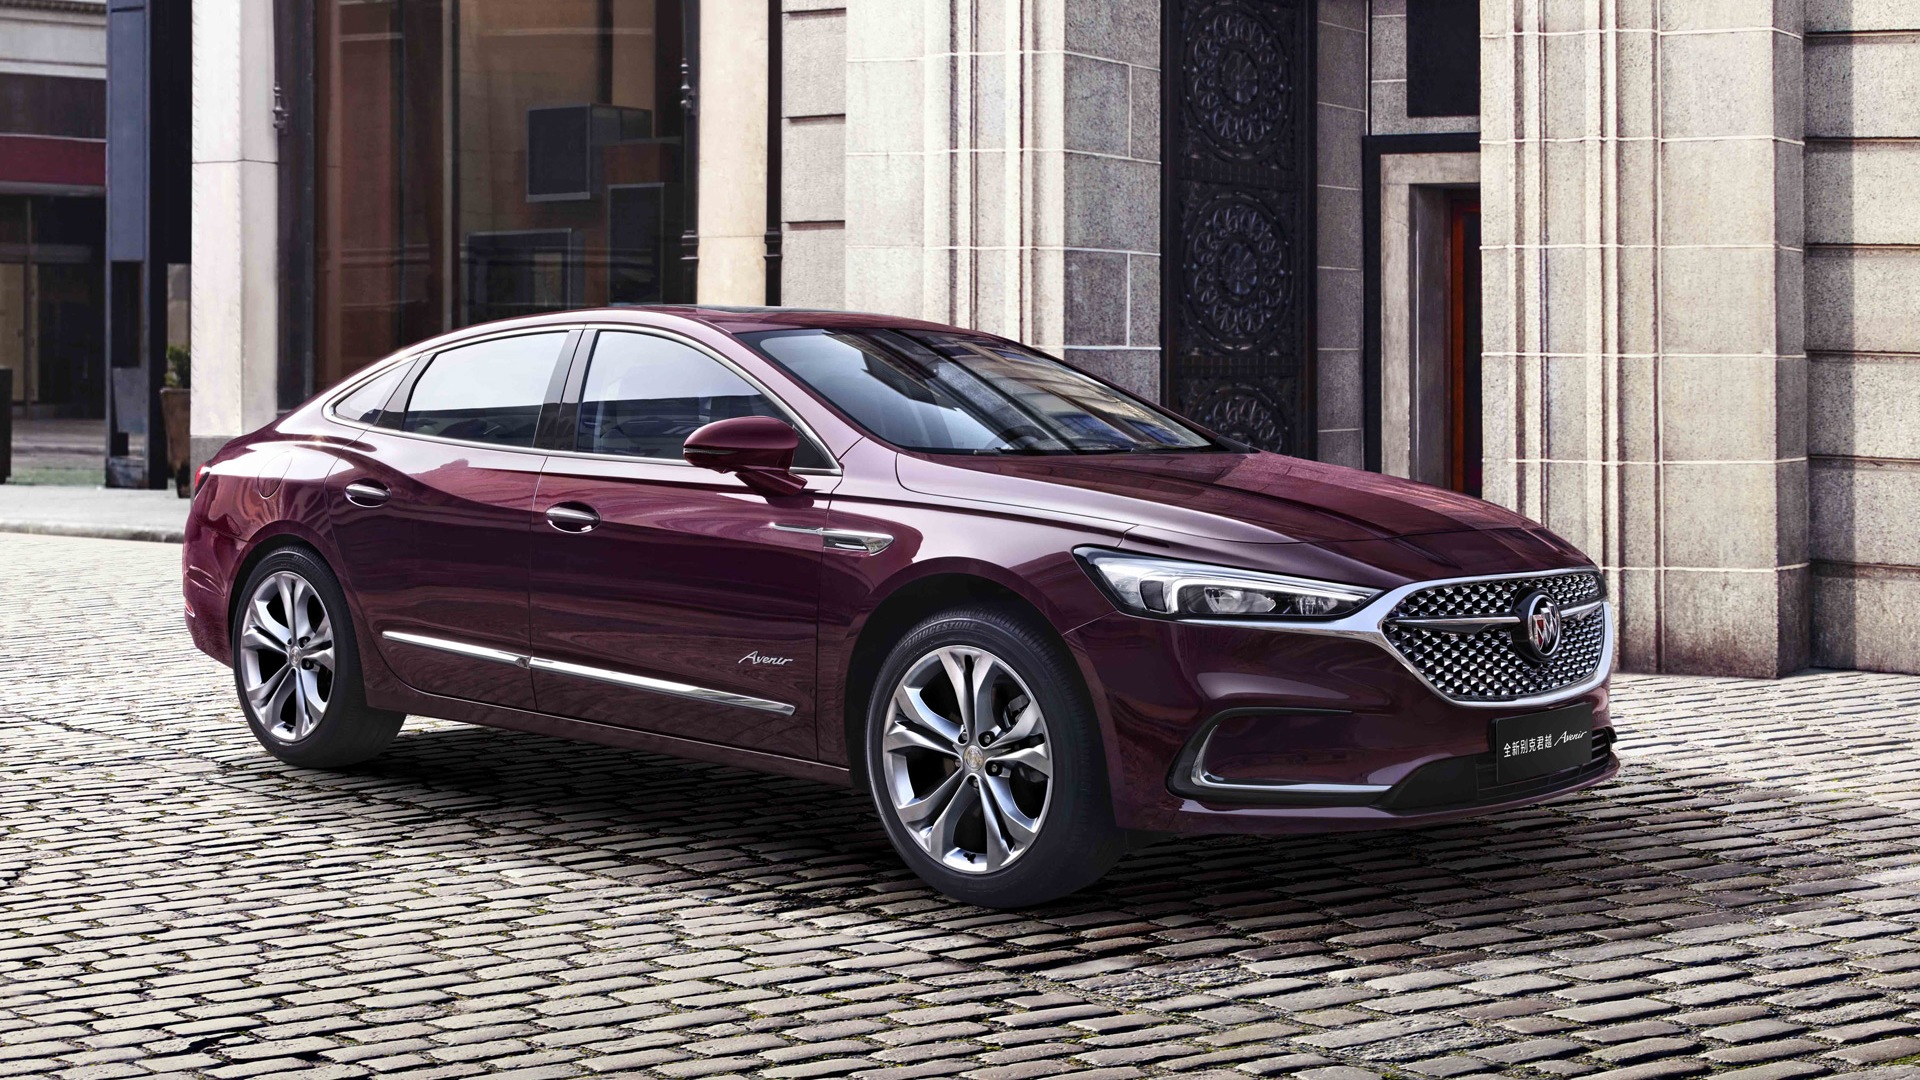 Car Spy Shots, News, Reviews, And Insights - Motor Authority 2021 Buick Lacrosse Brochure, Release Date, Colors